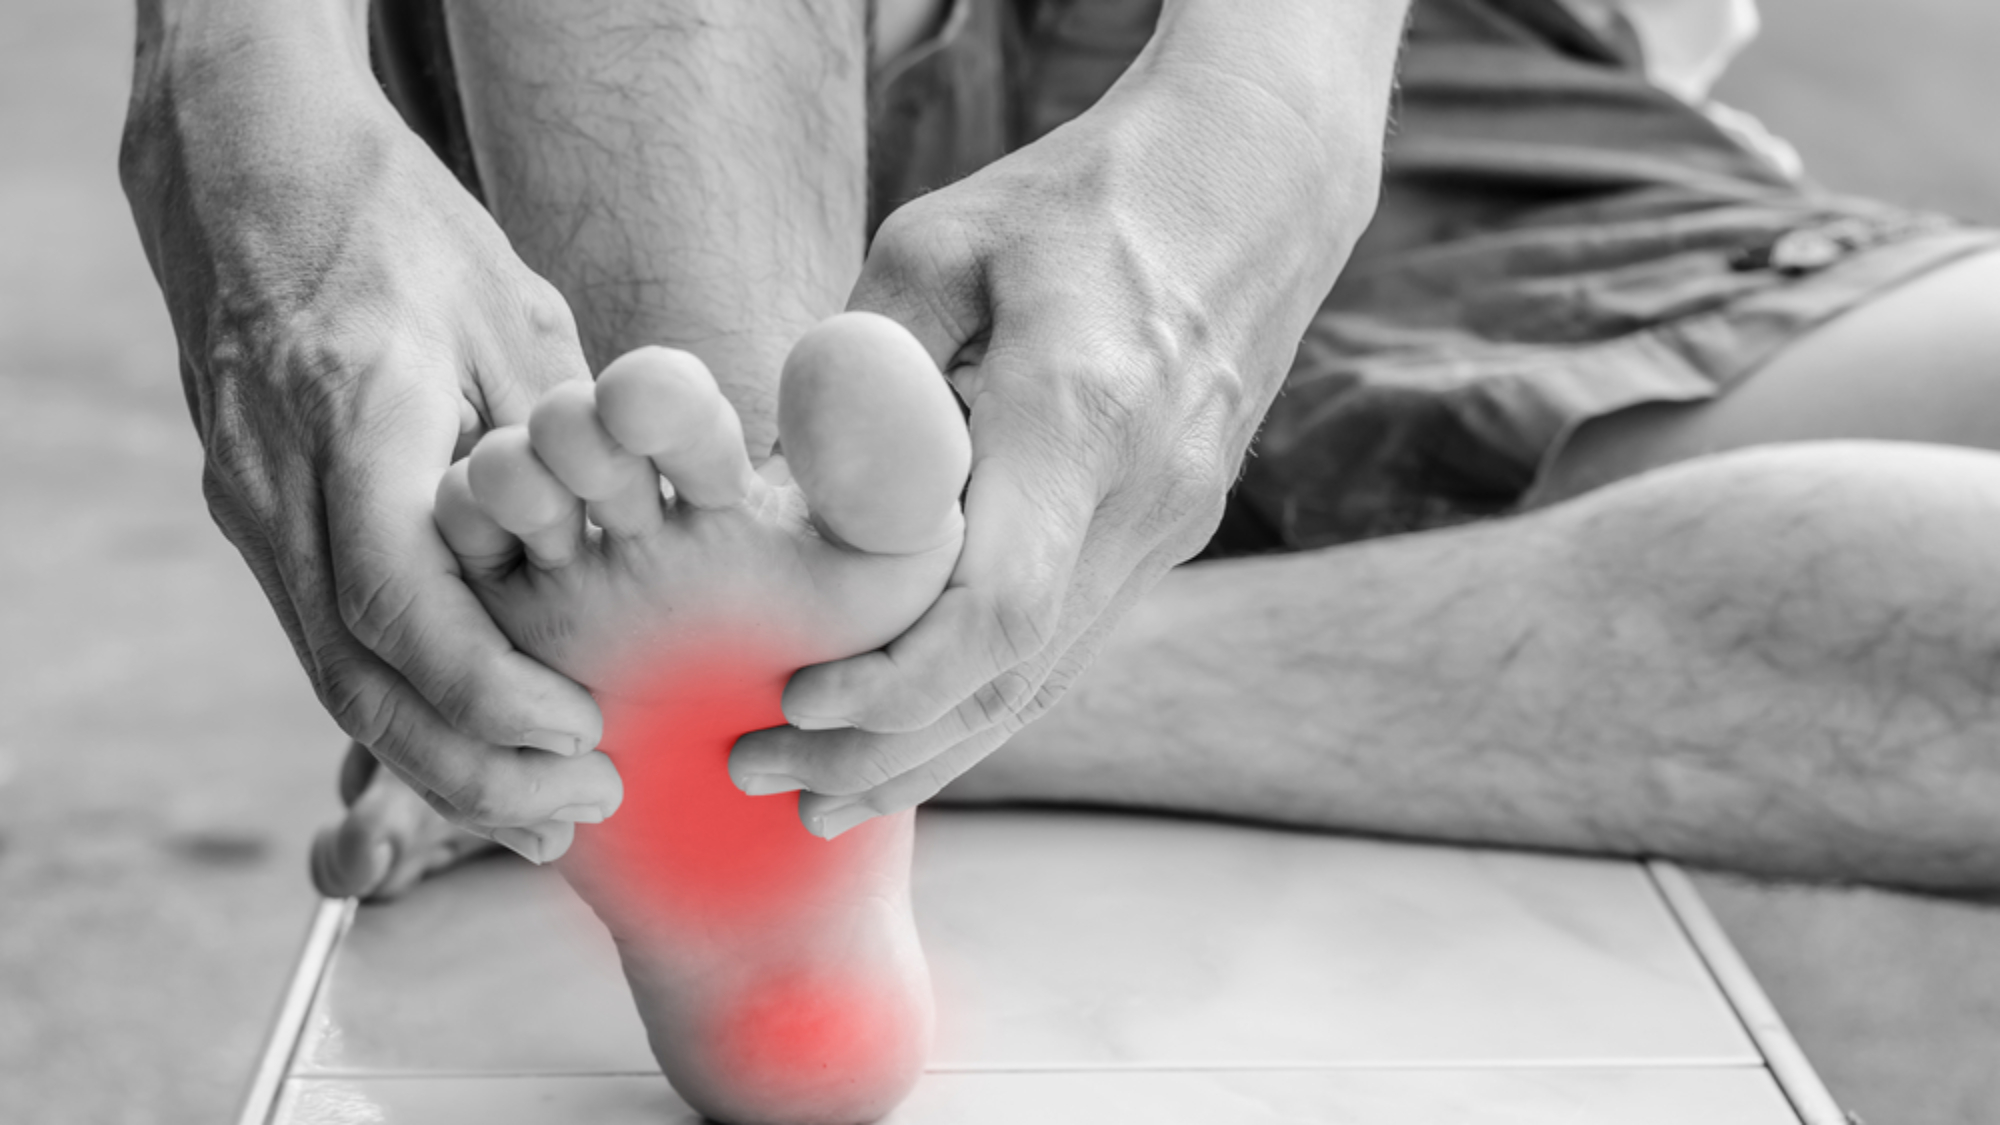 2-December-Constant-Foot-Pain-Blog-Walking-Mobility-Clinics